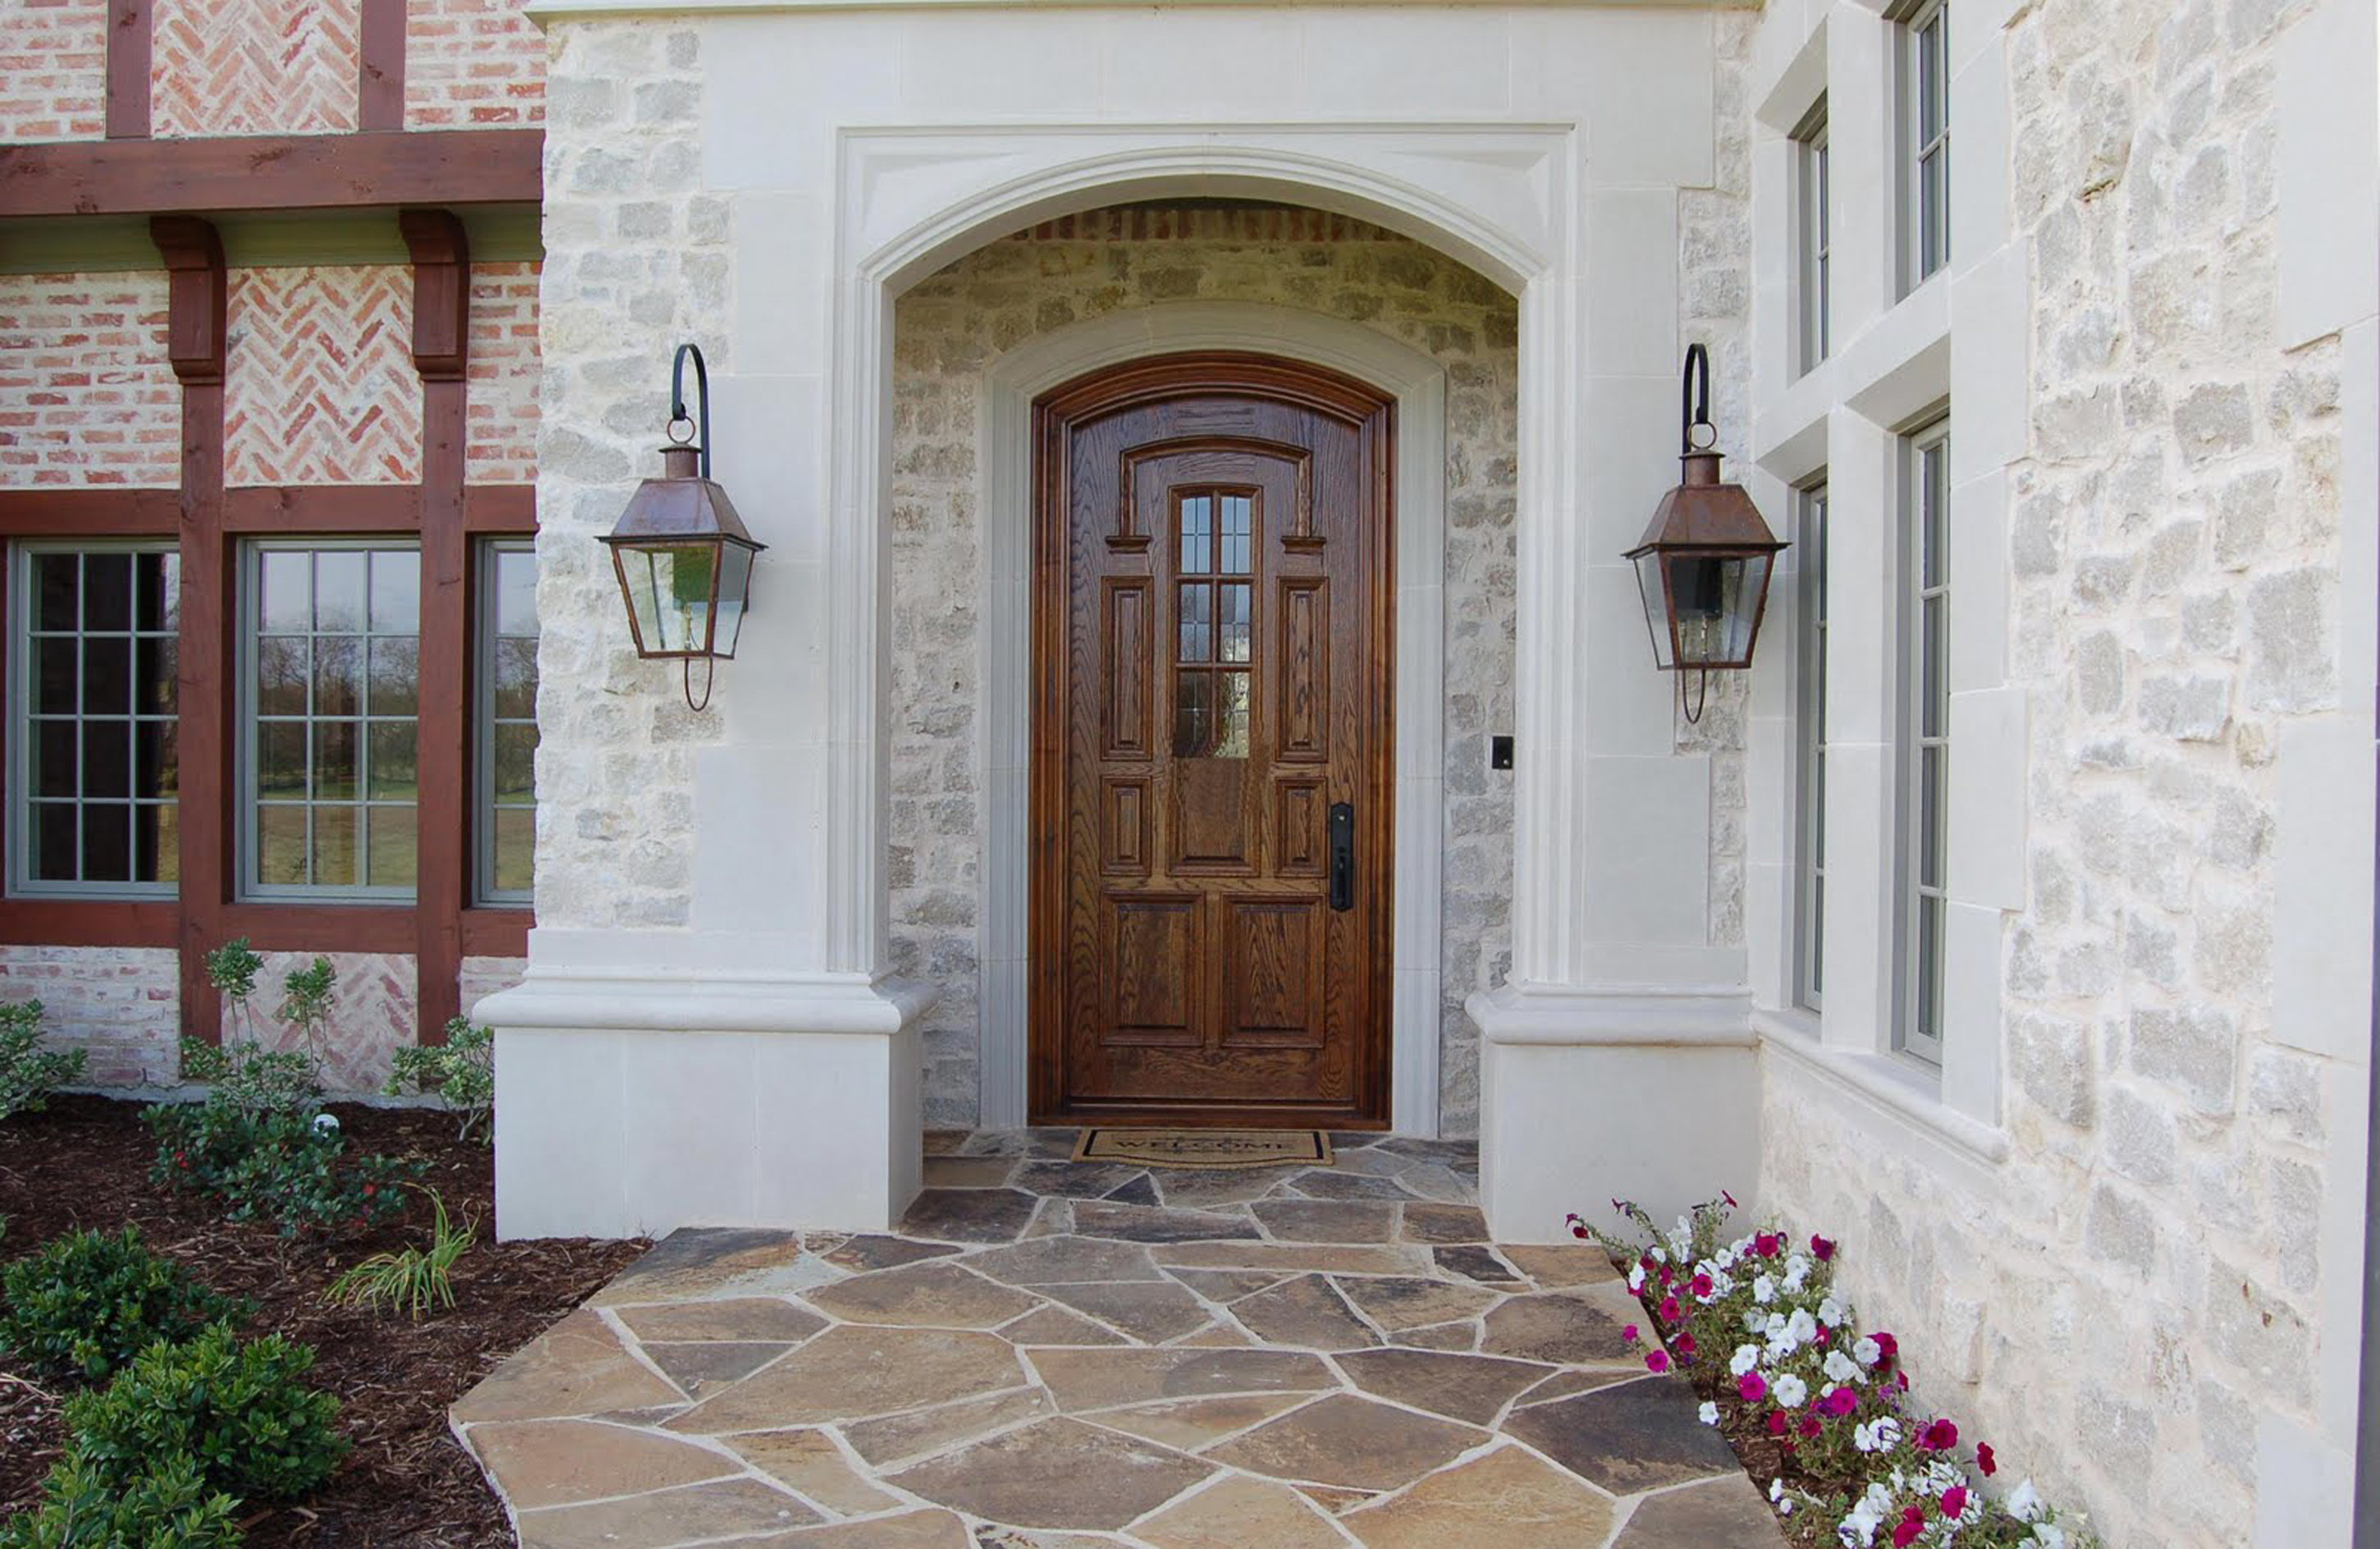 Luxury Brown Wooden Front Entry Door With Glass Accents And Black Handle And Cream Stone Wall With Brown Wall Lamps And Also Brown Stone Floor Tile Formidable Front Entry Door Designs (Image 51 of 123)